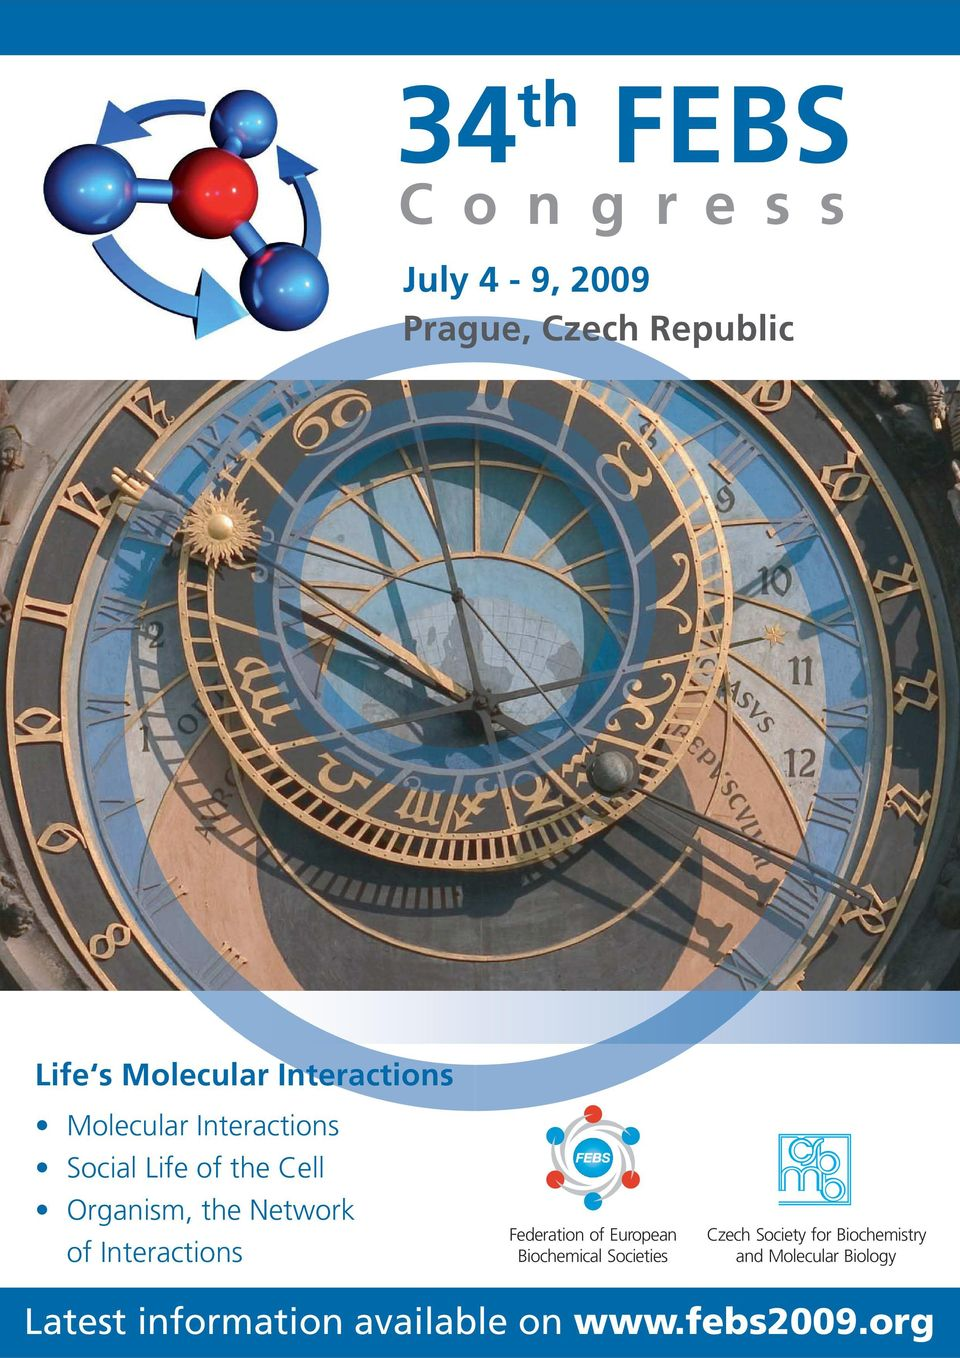 of Interactions Federation of European Biochemical Societies Czech Society for